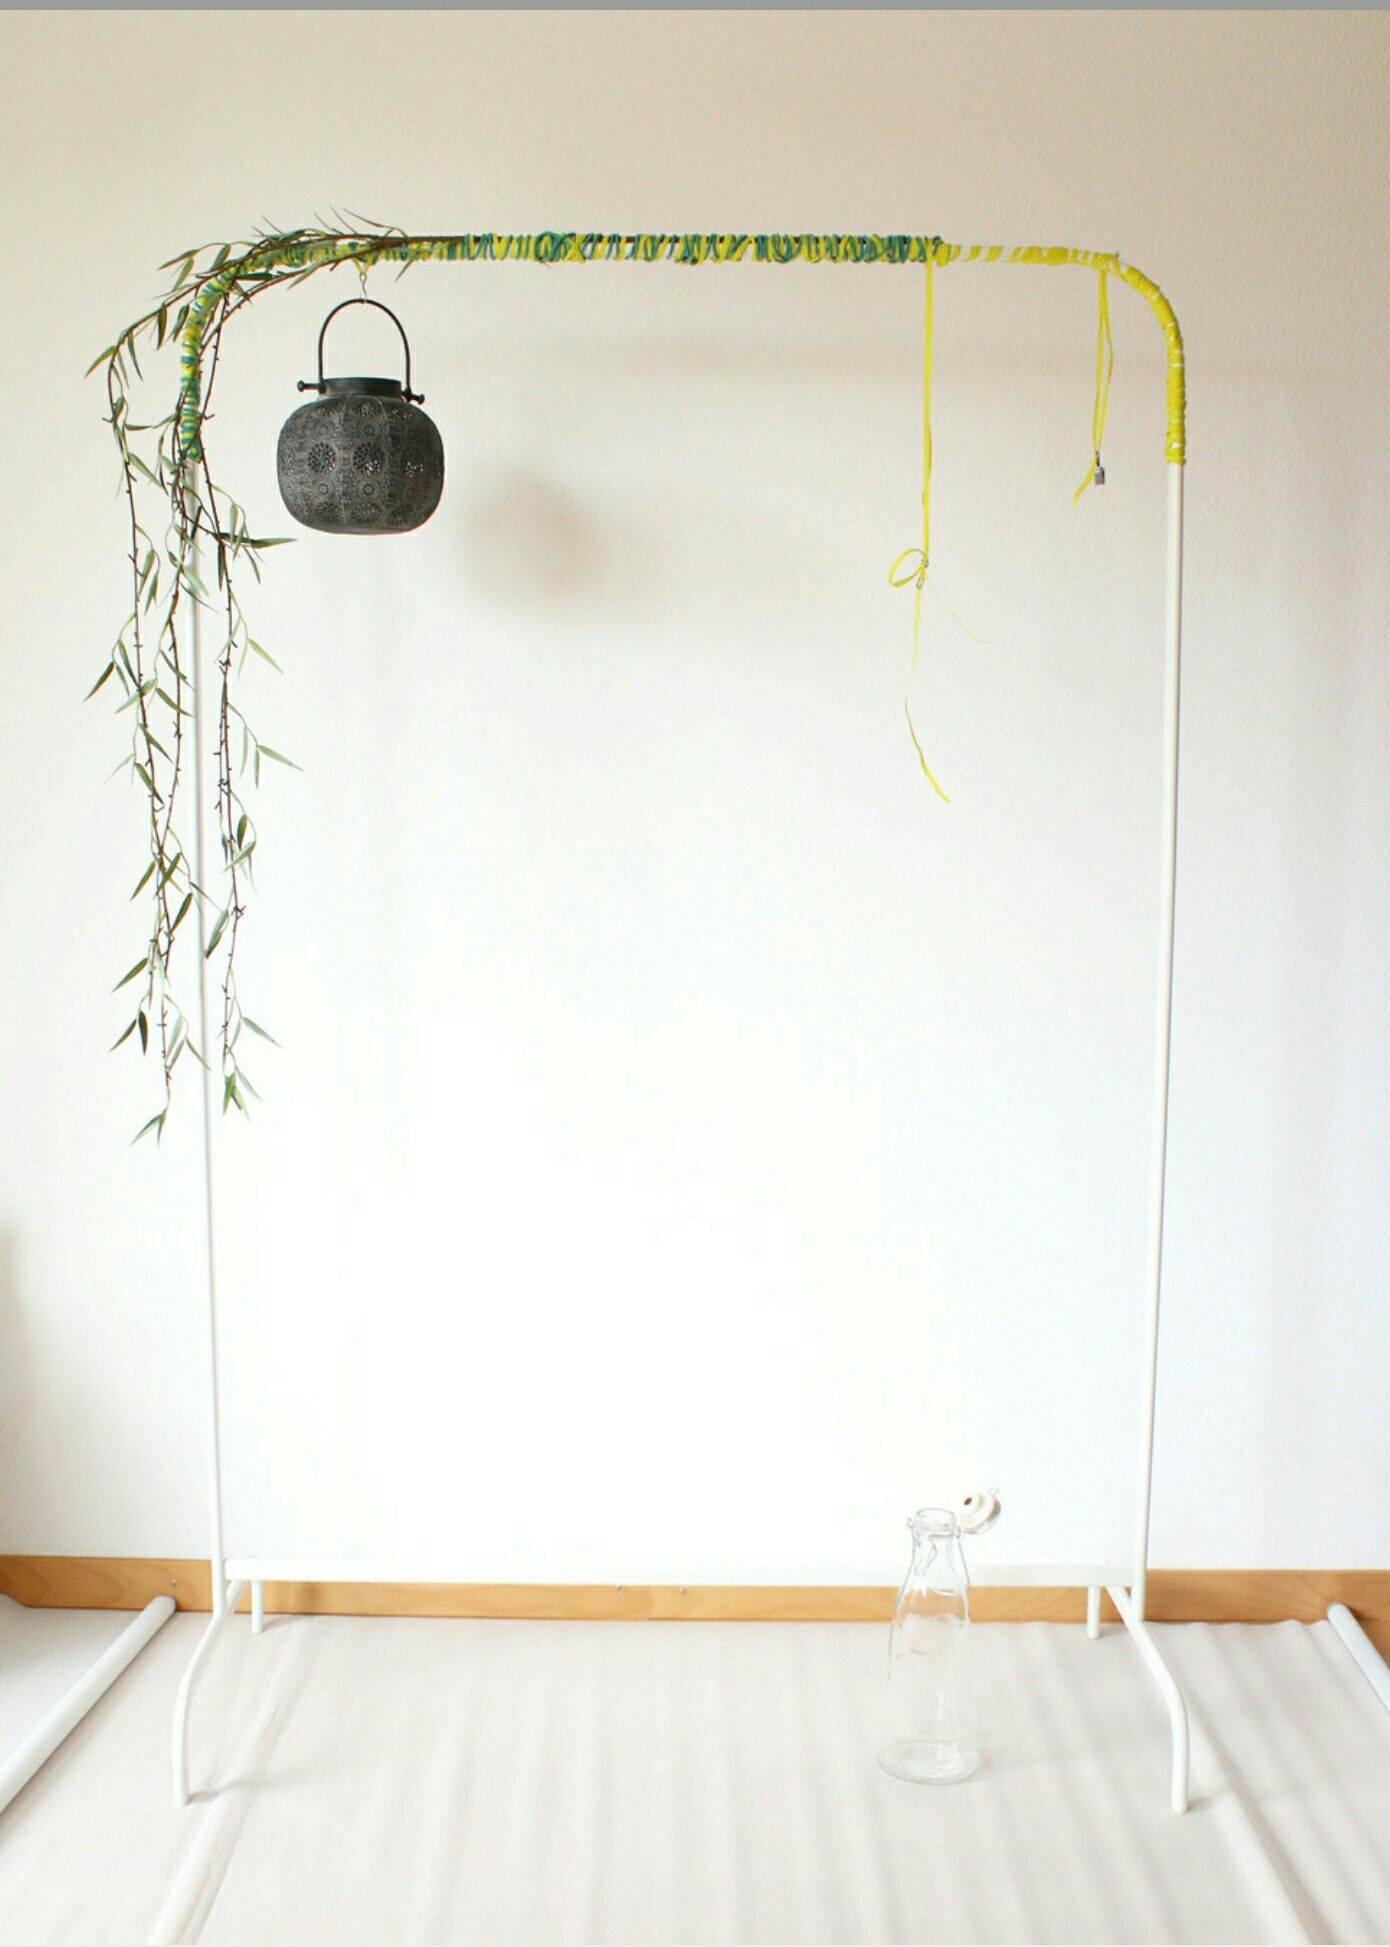 Ikea Mulig Hack From Hanging Rack To Garden Display Ikea Rack Ikea Clothes Rack Ikea Decor